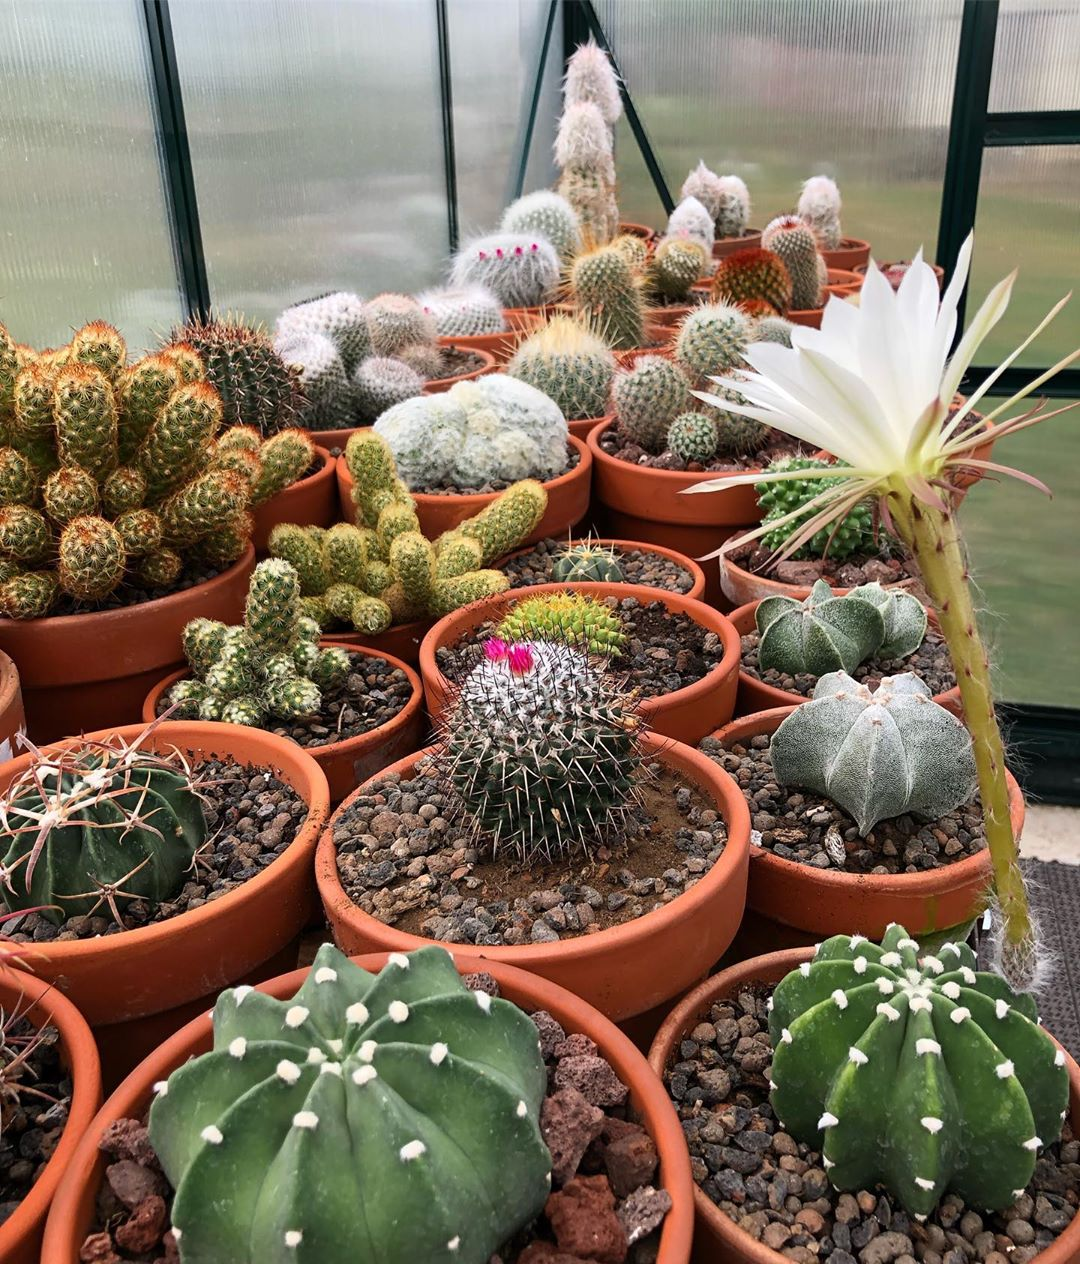 What Is Special About A Cactus?